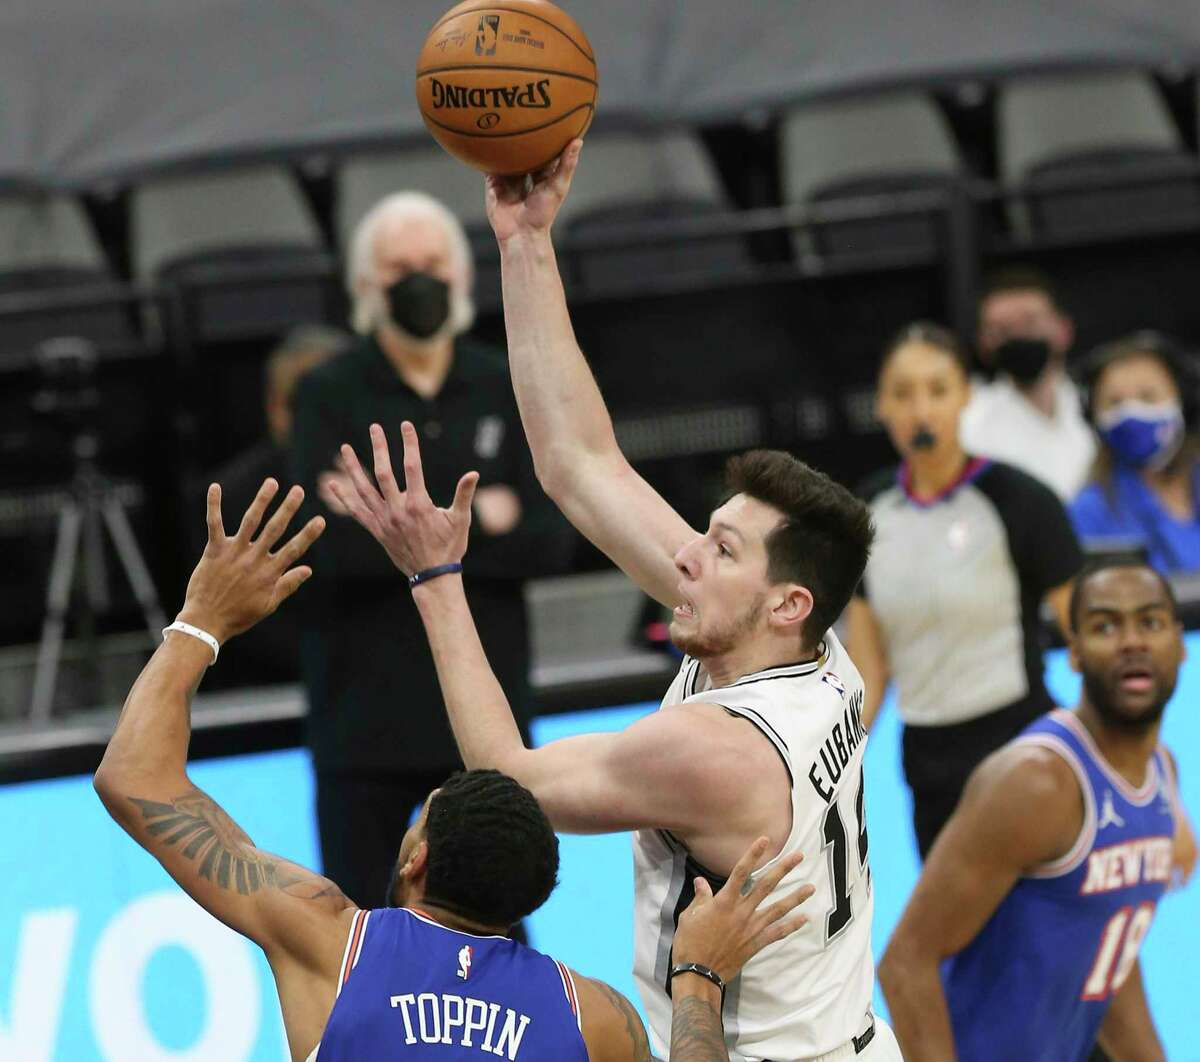 Spurs' Drew Eubanks (14) shoots against New York Knicks' Obi Toppin (01) at the AT&T Center on Tuesday, Mar. 2, 2021.